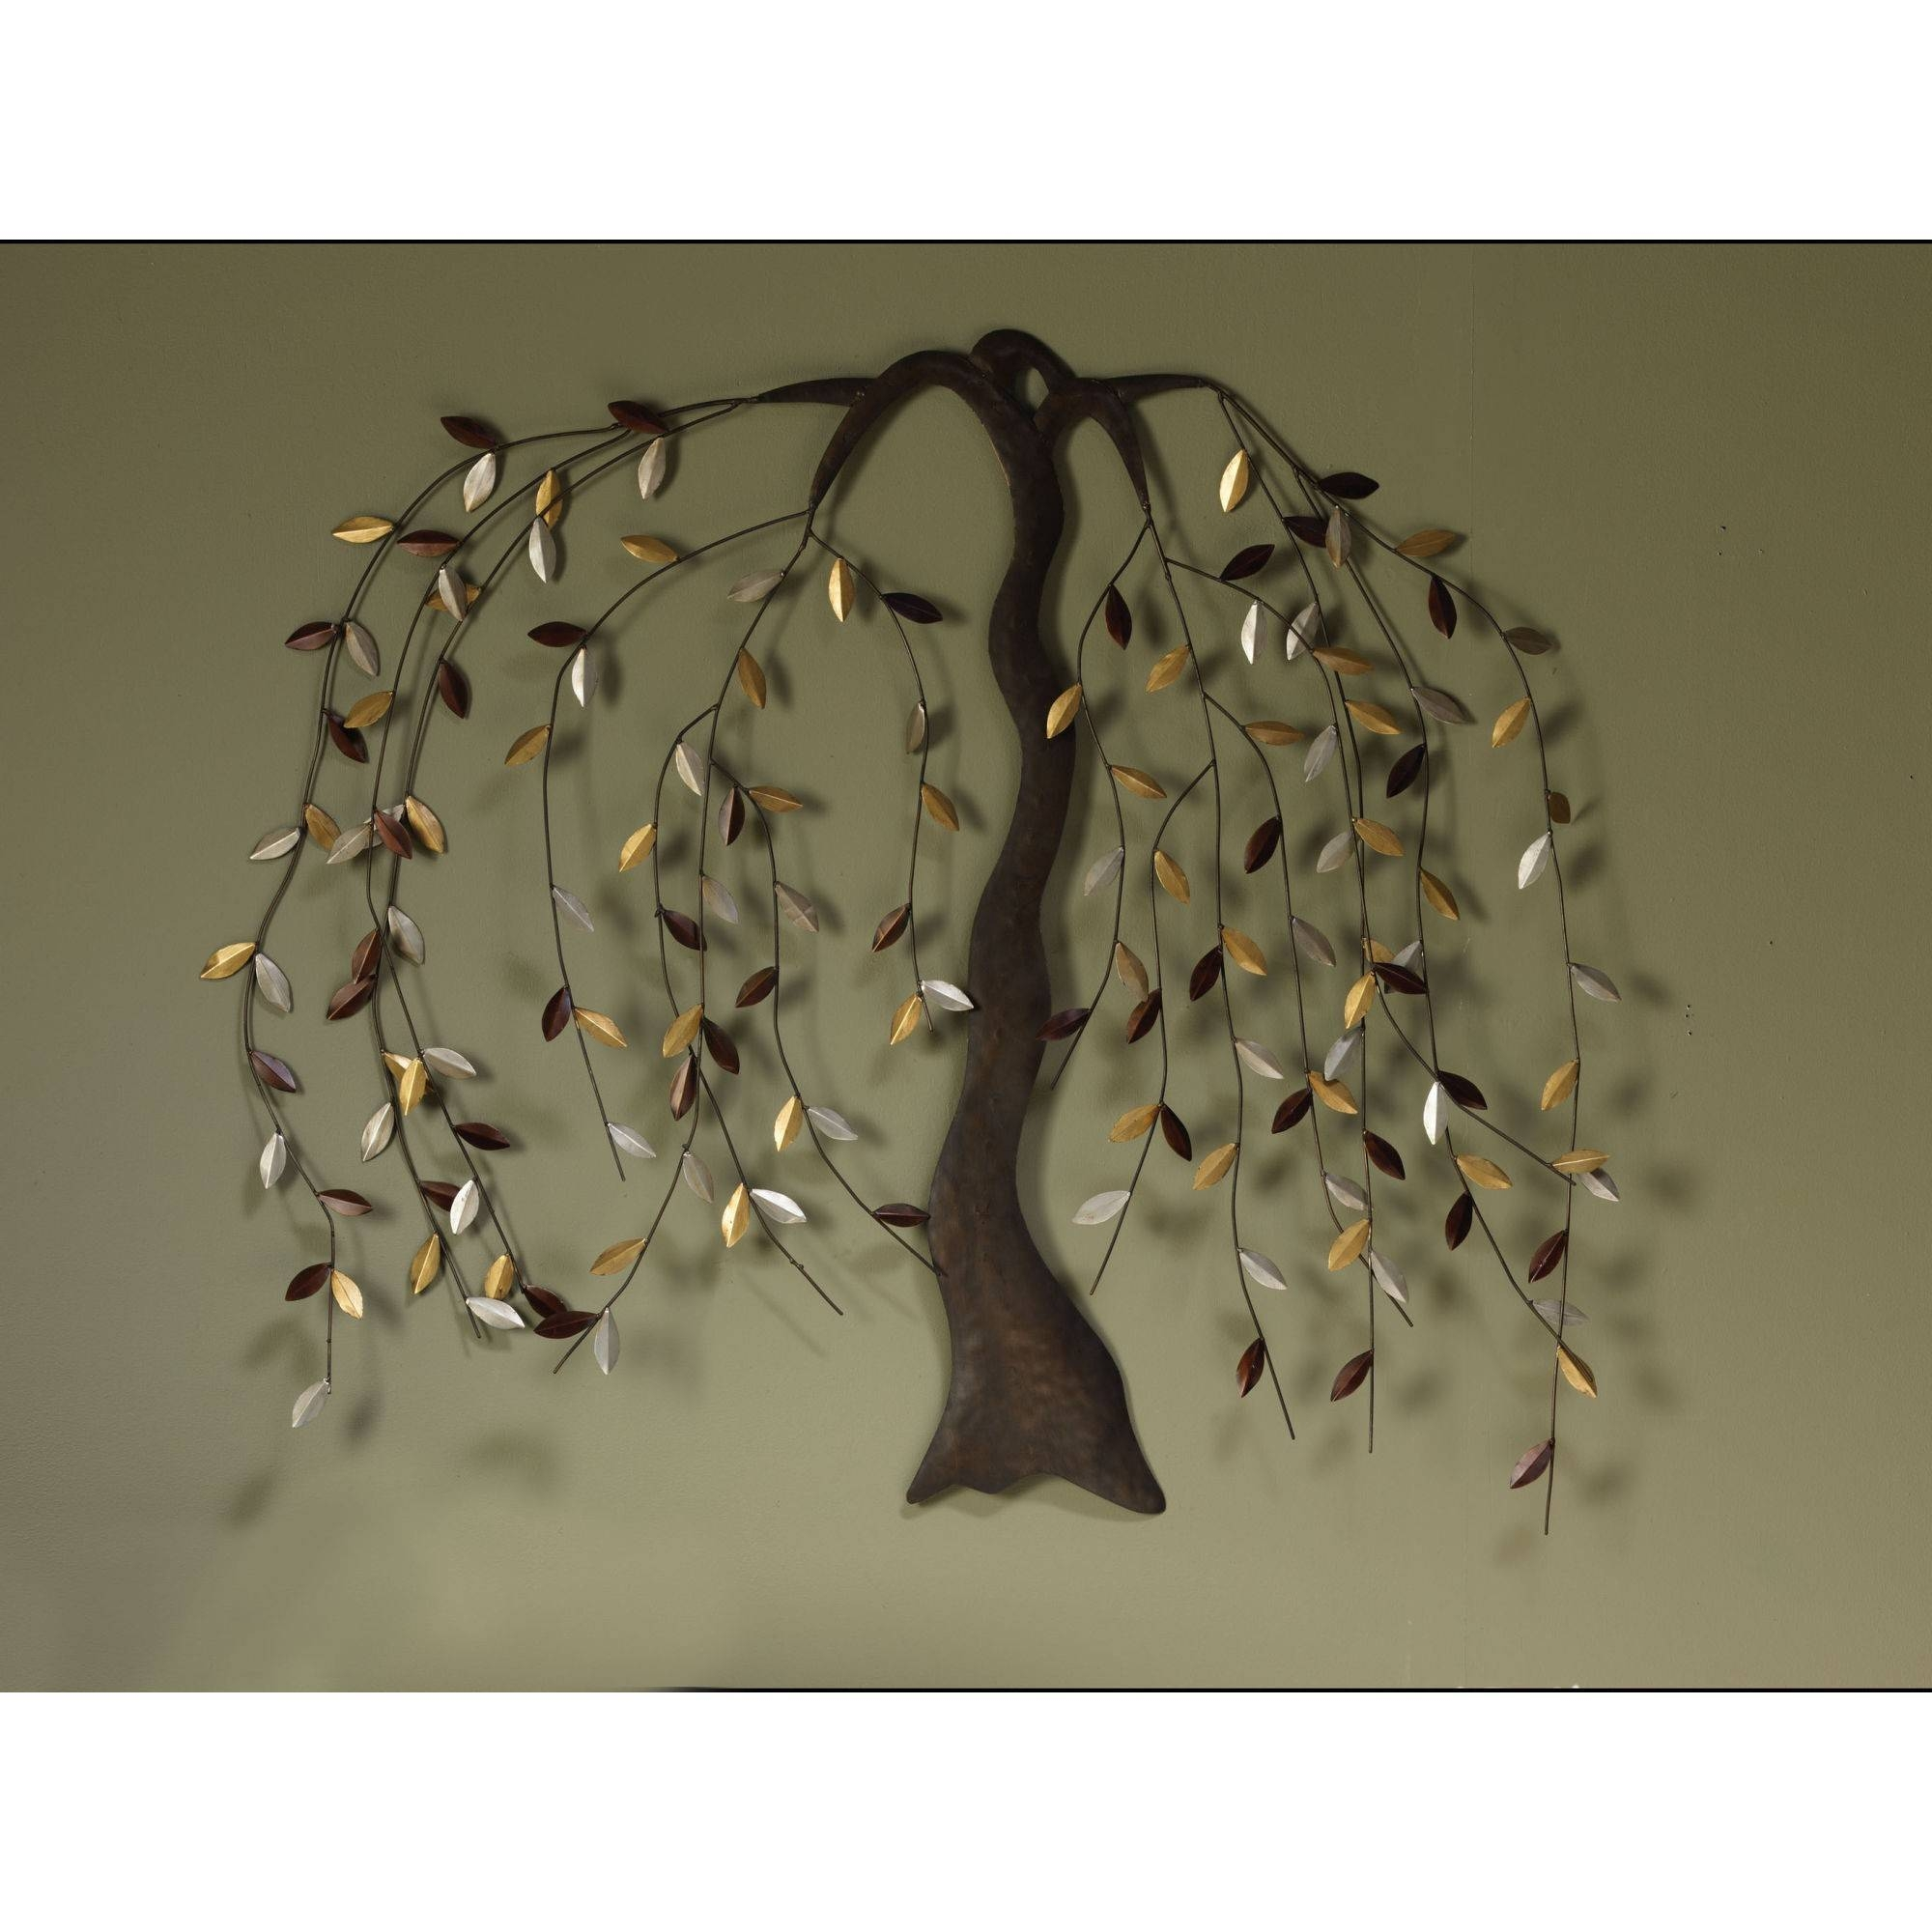 Magnificent Watch Iron Wall Decor Metal Metal Wall Art Iron Wall Pertaining To Most Up To Date Large Metal Wall Art Decor (View 20 of 20)